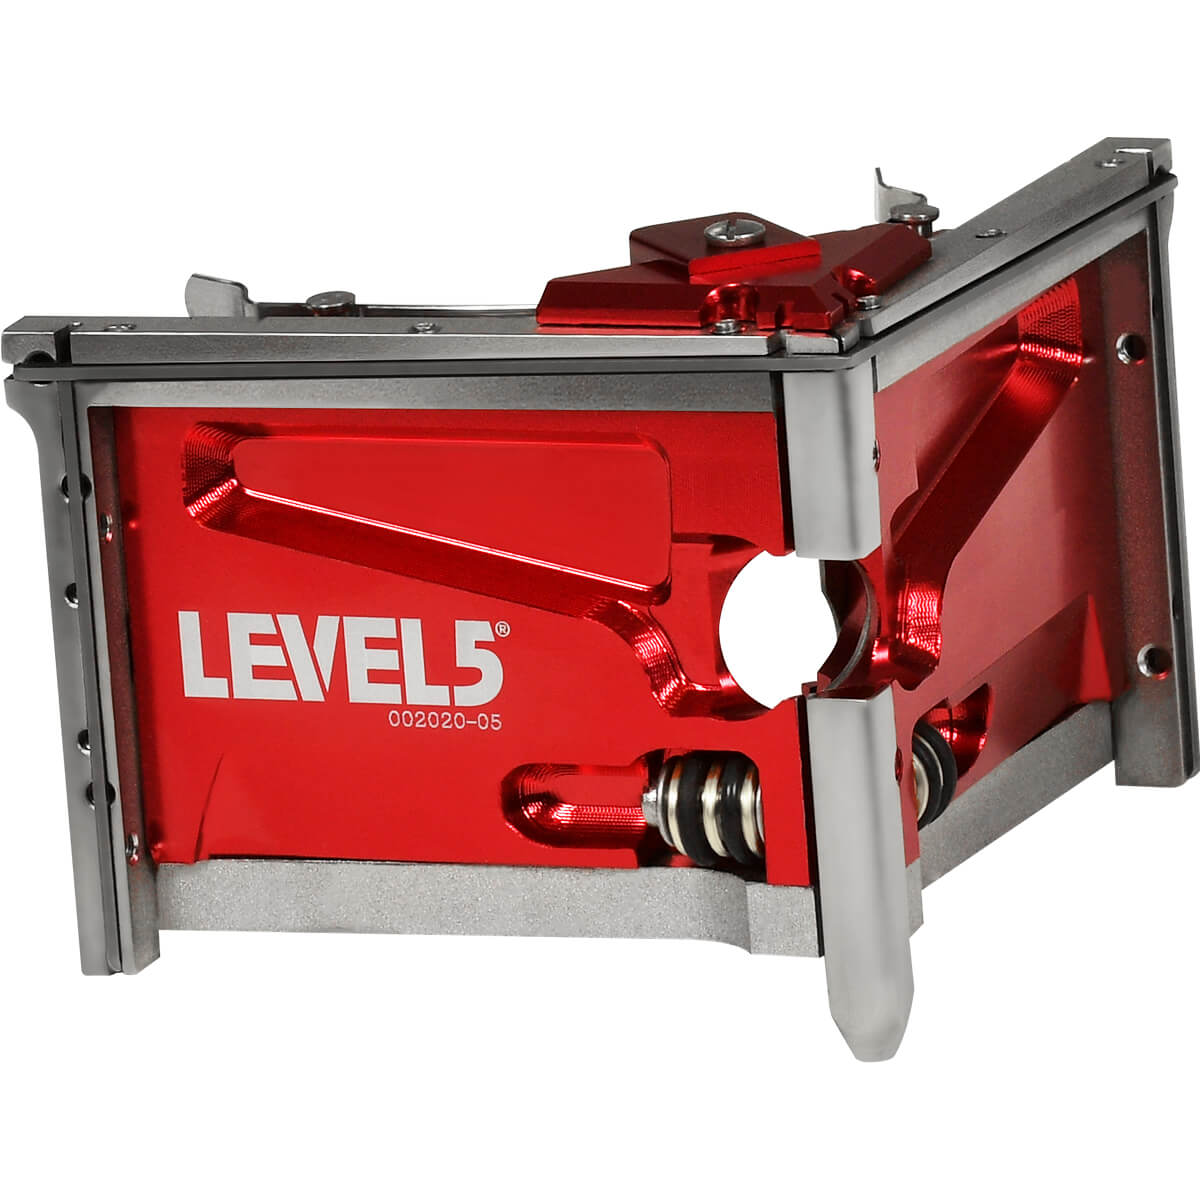 LEVEL5 3.5 Inch Drywall Corner Finisher | 4-734